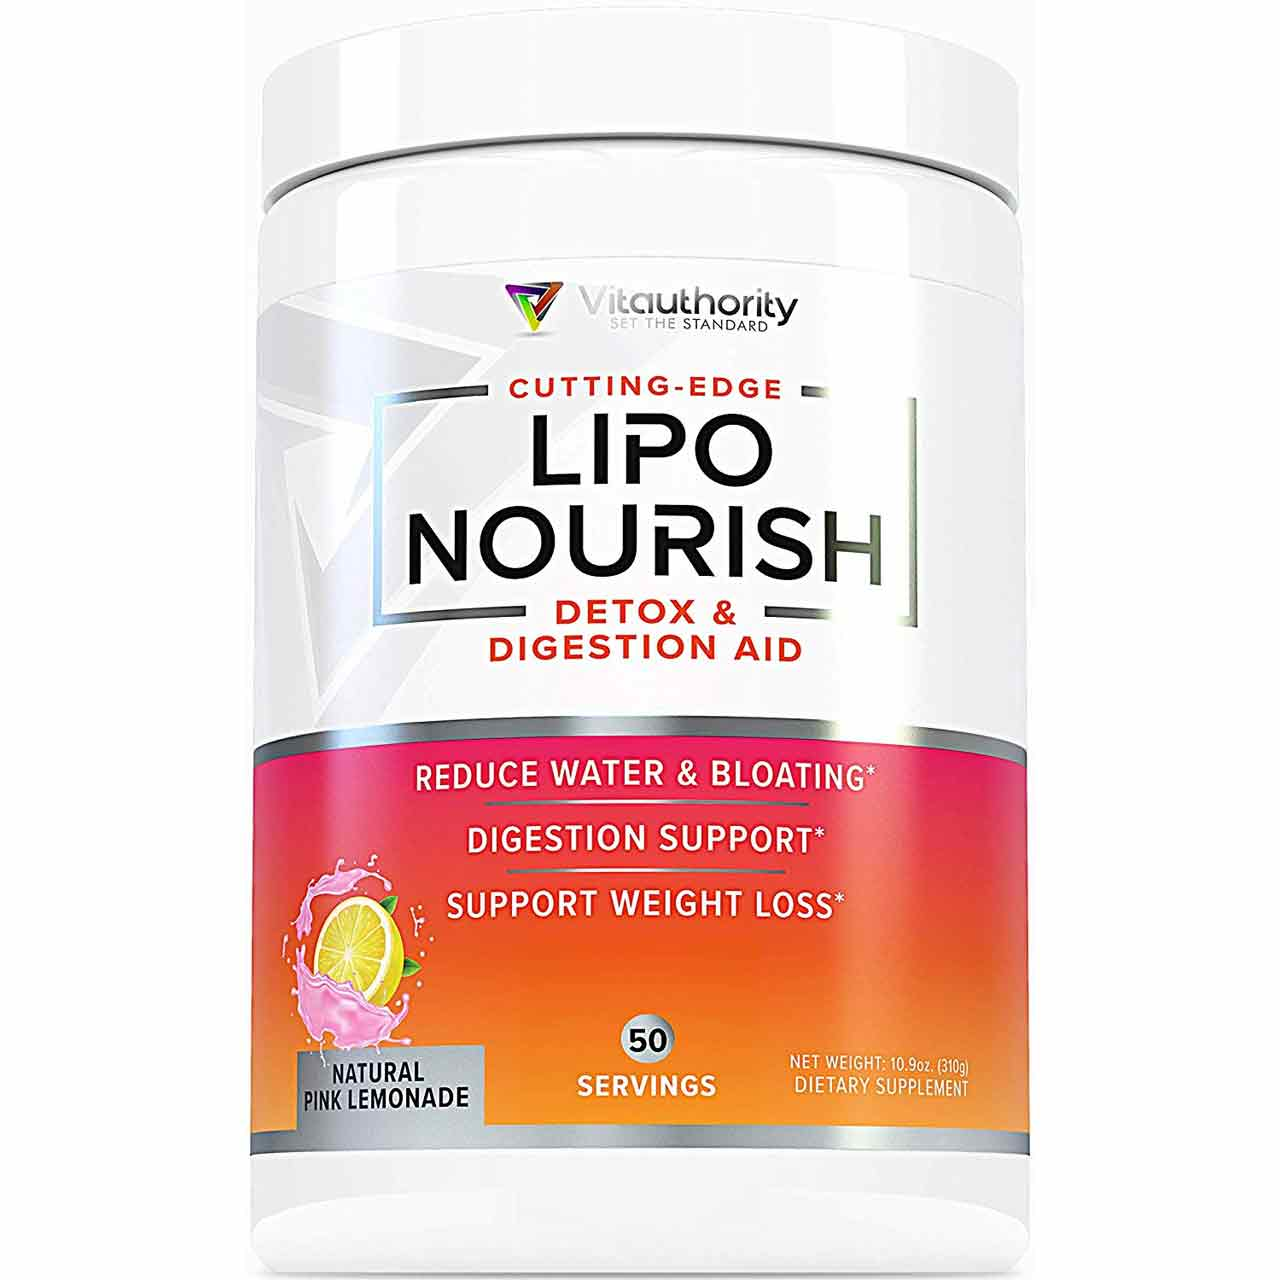 Vitauthority Lipo Nourish